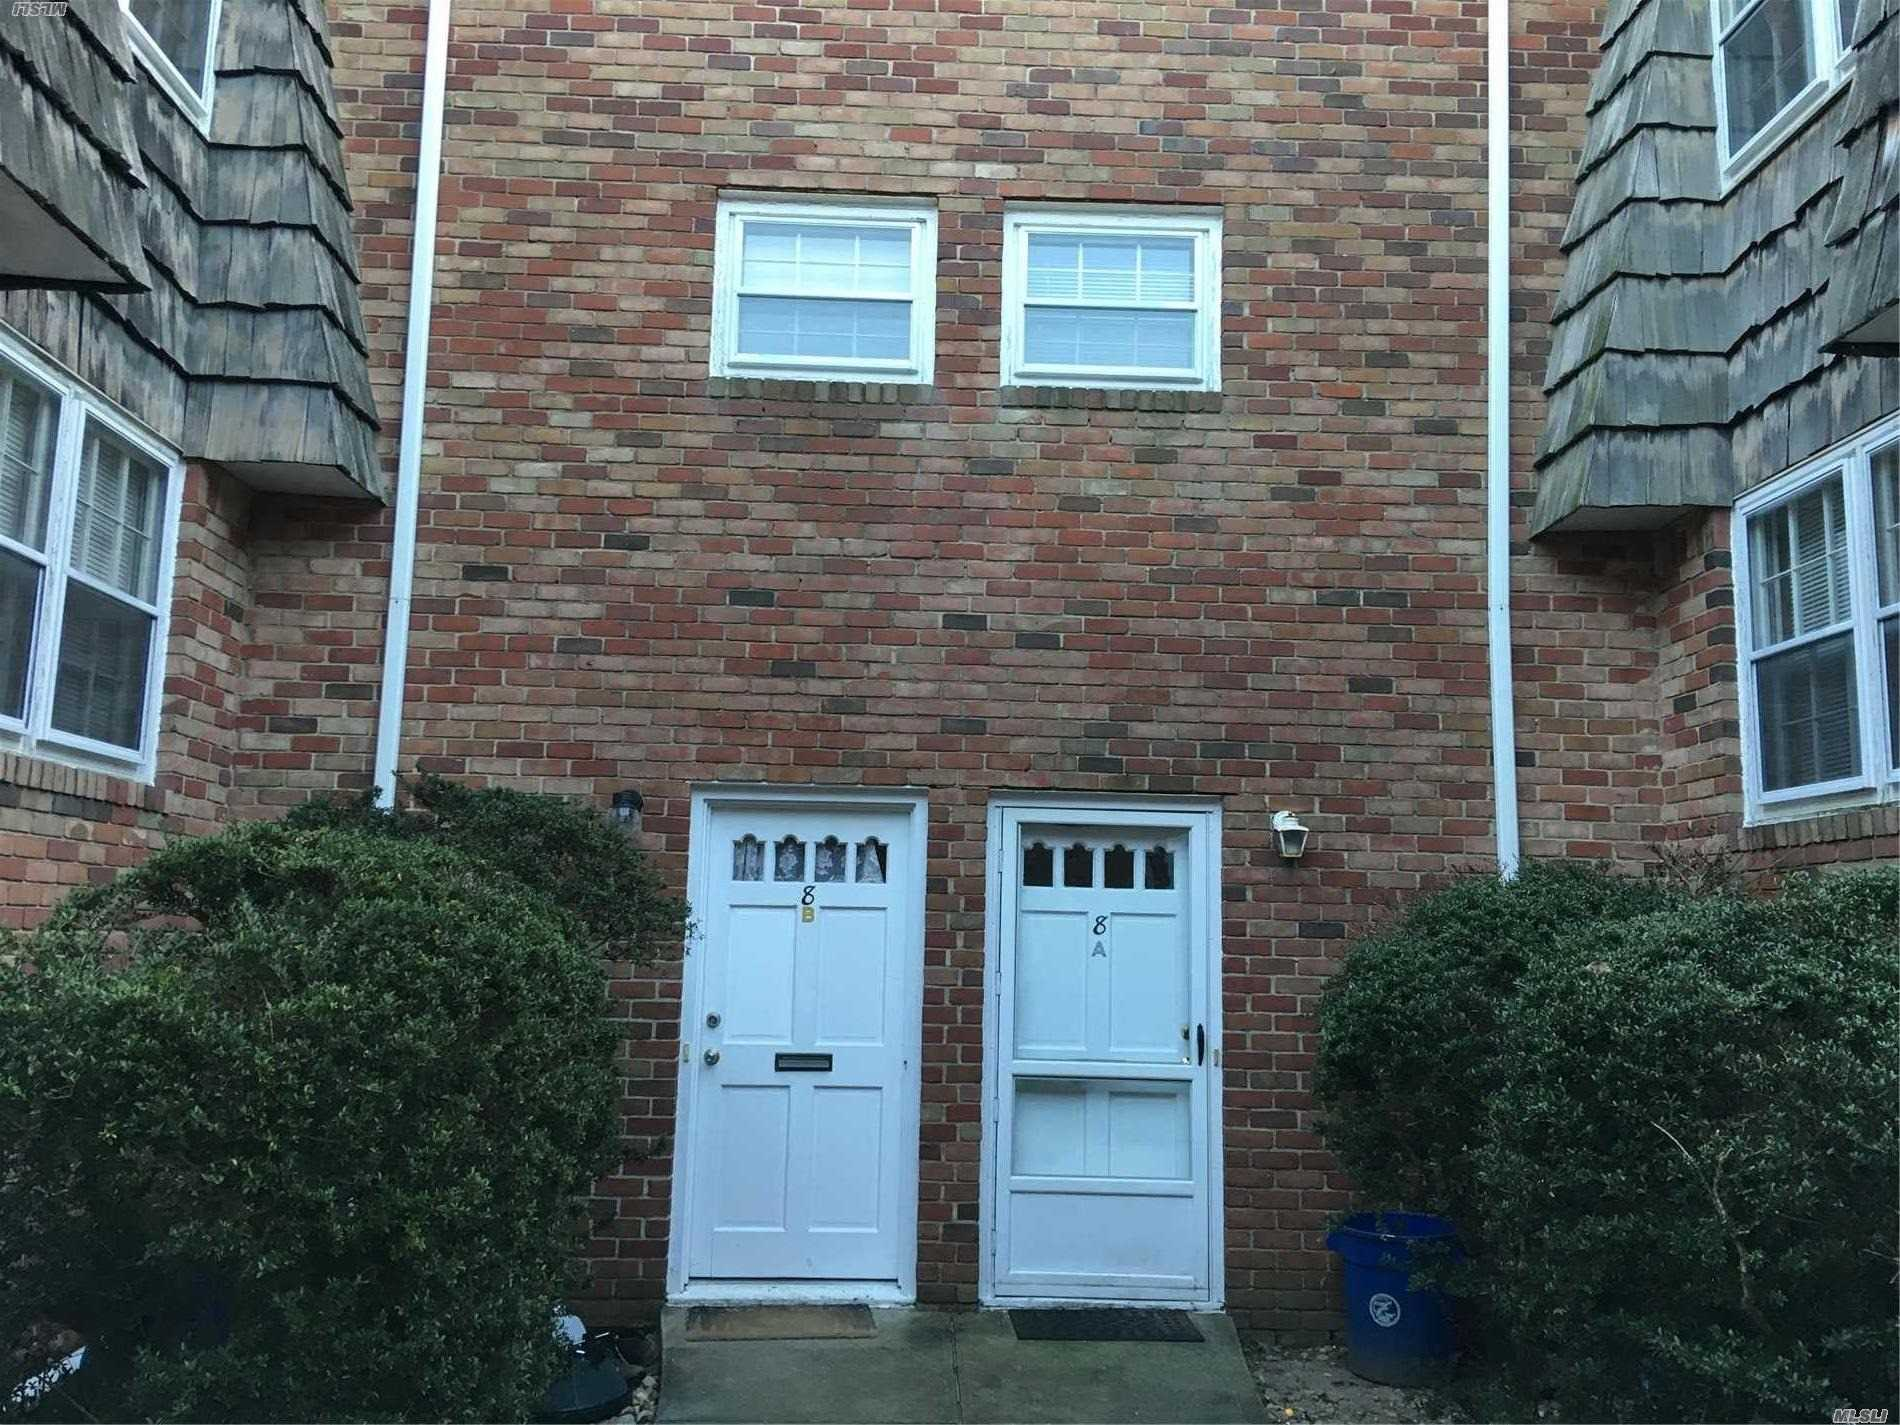 Two Bedroom Duplex Apartment. Close To Manorhaven Community Park, Beach And Pool.